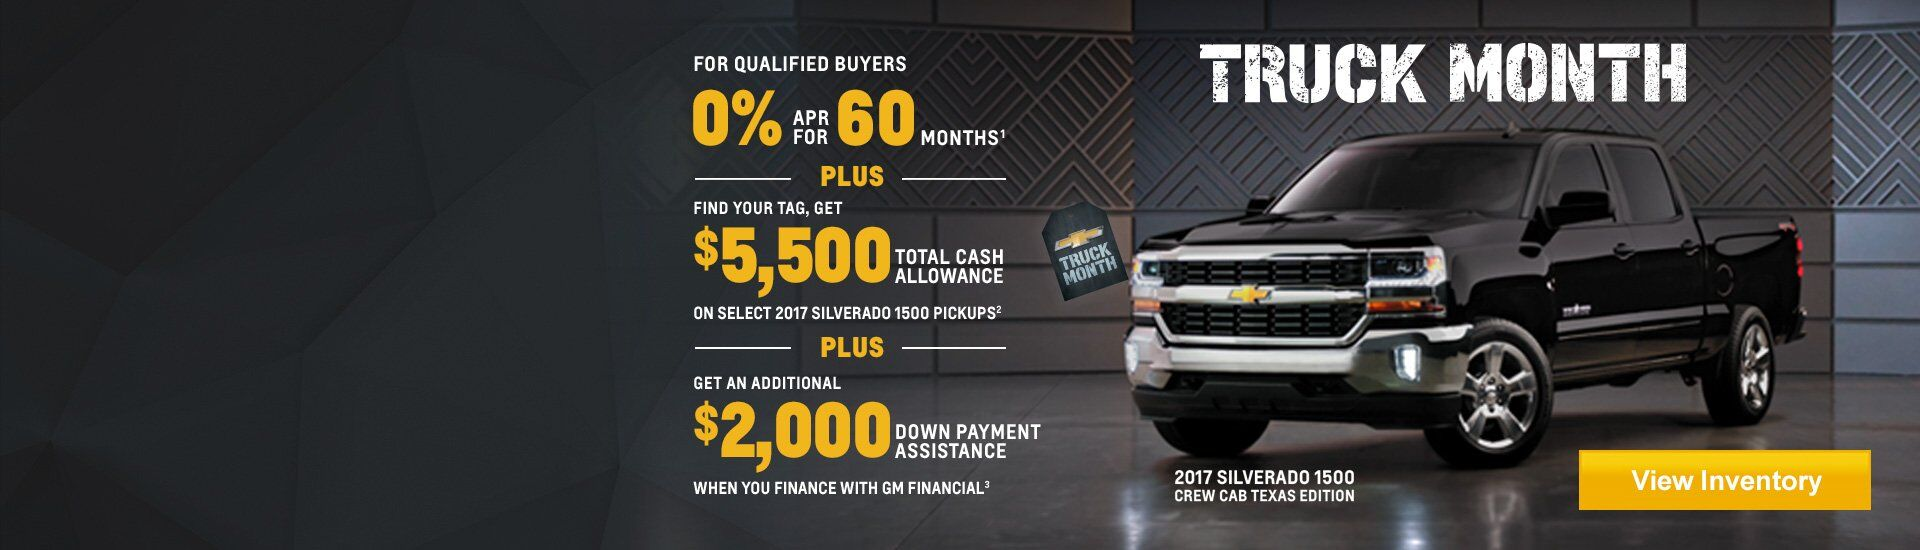 Chevy Truck Month Offer